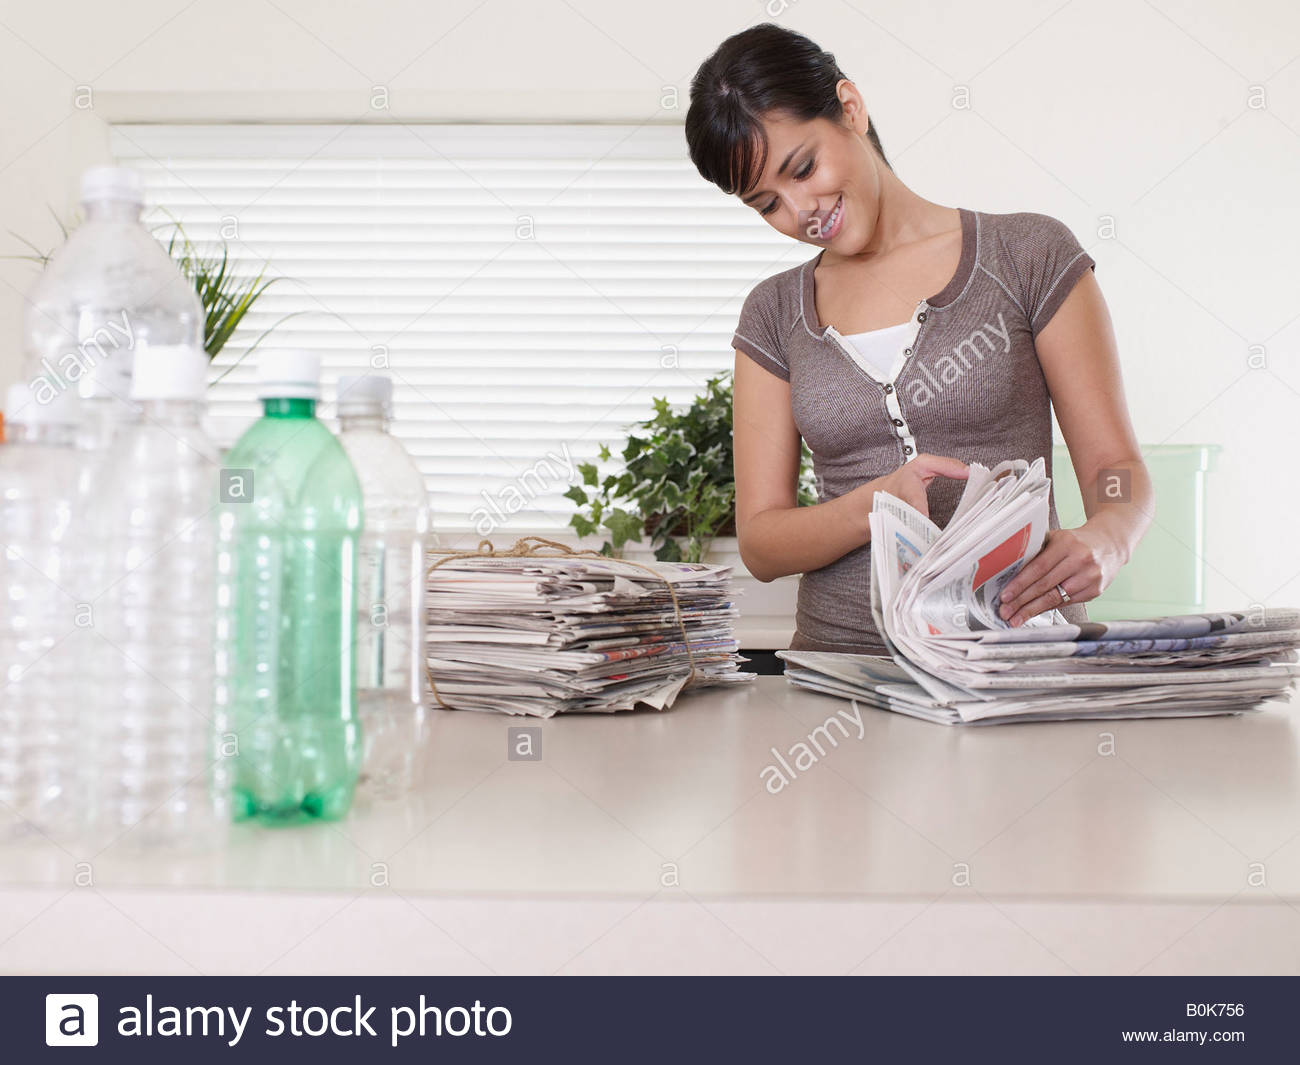 Woman in kitchen with recyclable materials smiling - Stock Image